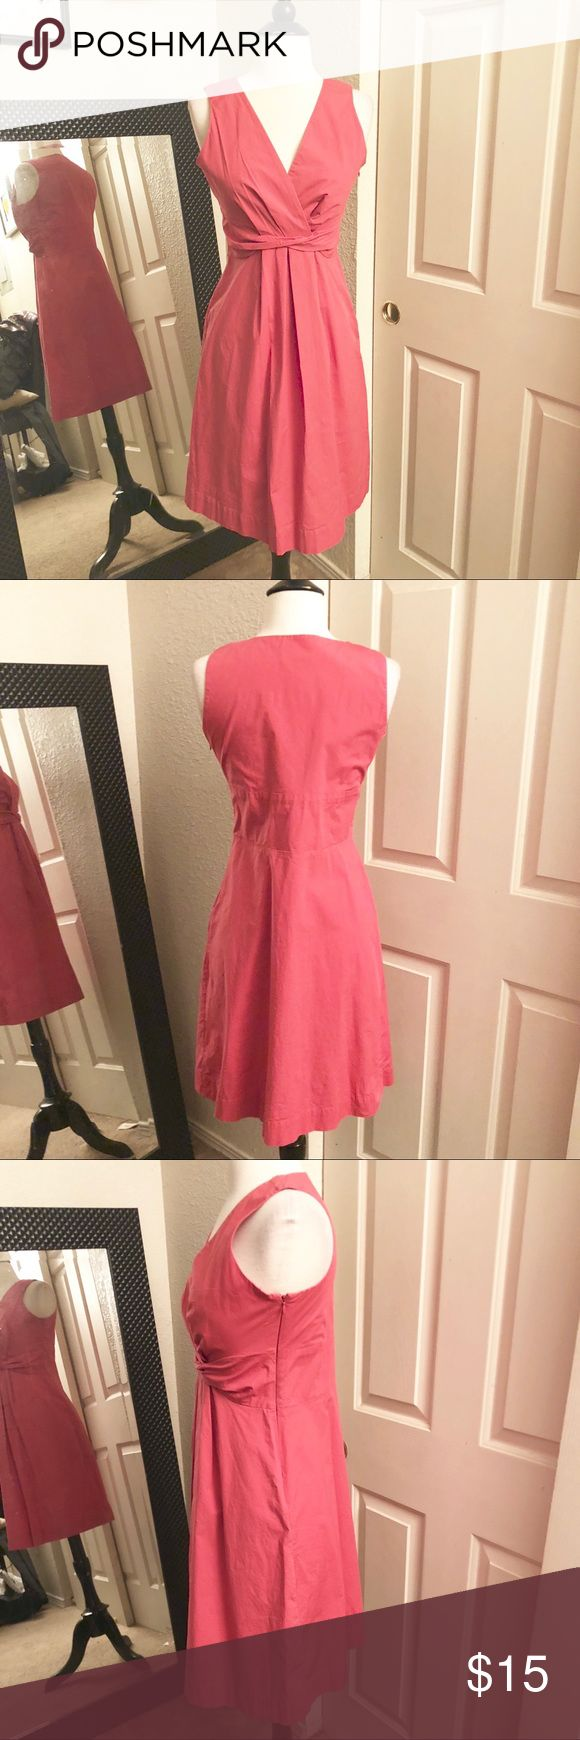 New York & Co. Salmon Dress Size 4 Preowned New York & Co. Salmon Dress Size 4 New York & Company Dresses